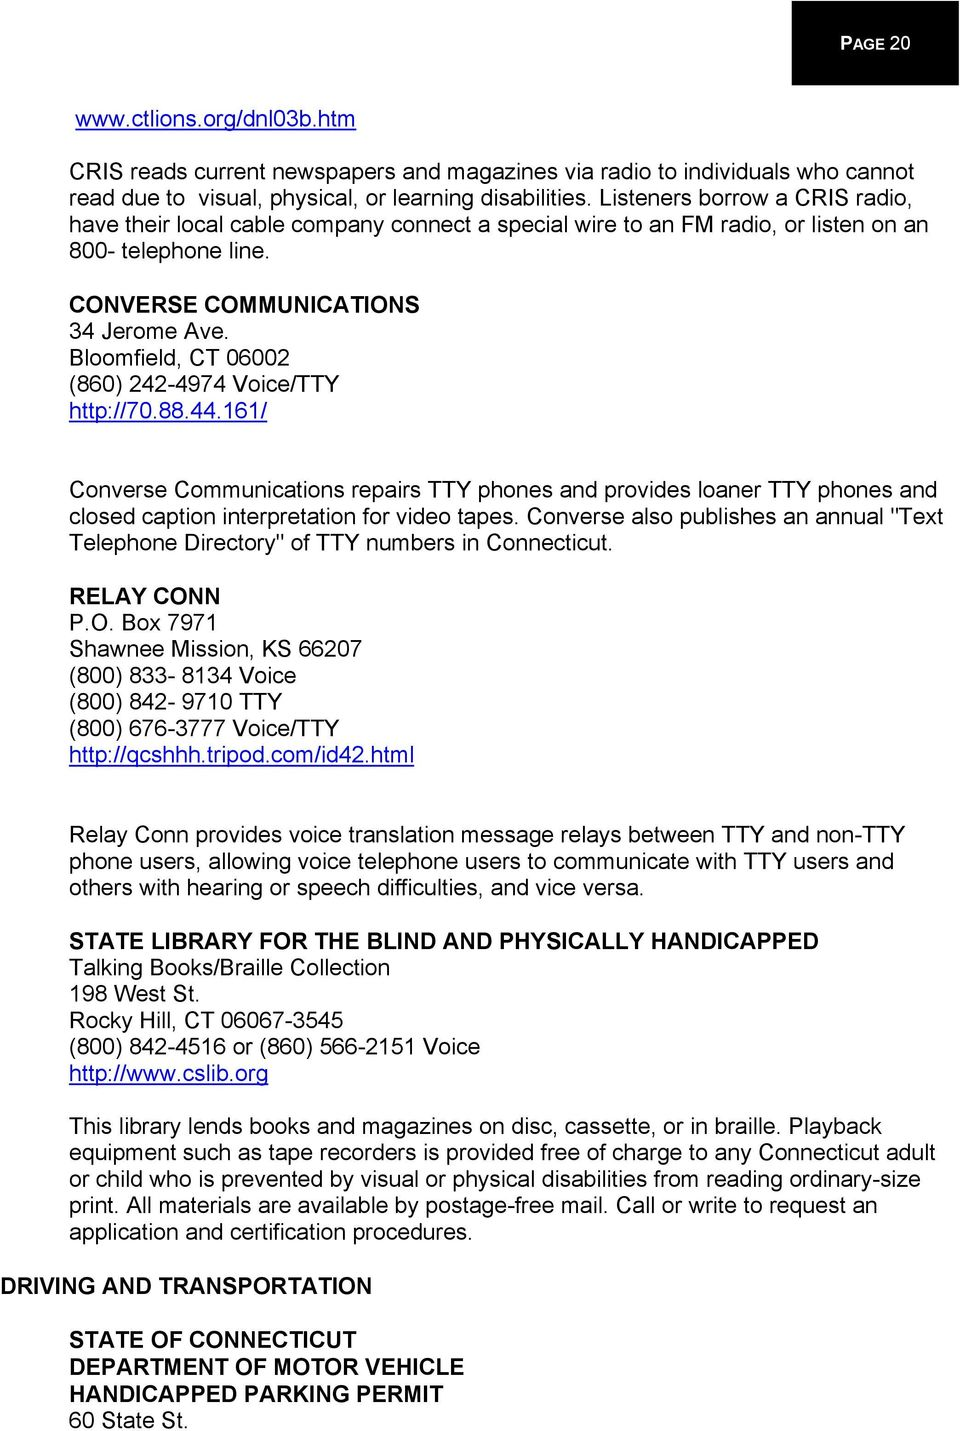 Bloomfield, CT 06002 (860) 242-4974 Voice/TTY http://70.88.44.161/ Converse Communications repairs TTY phones and provides loaner TTY phones and closed caption interpretation for video tapes.